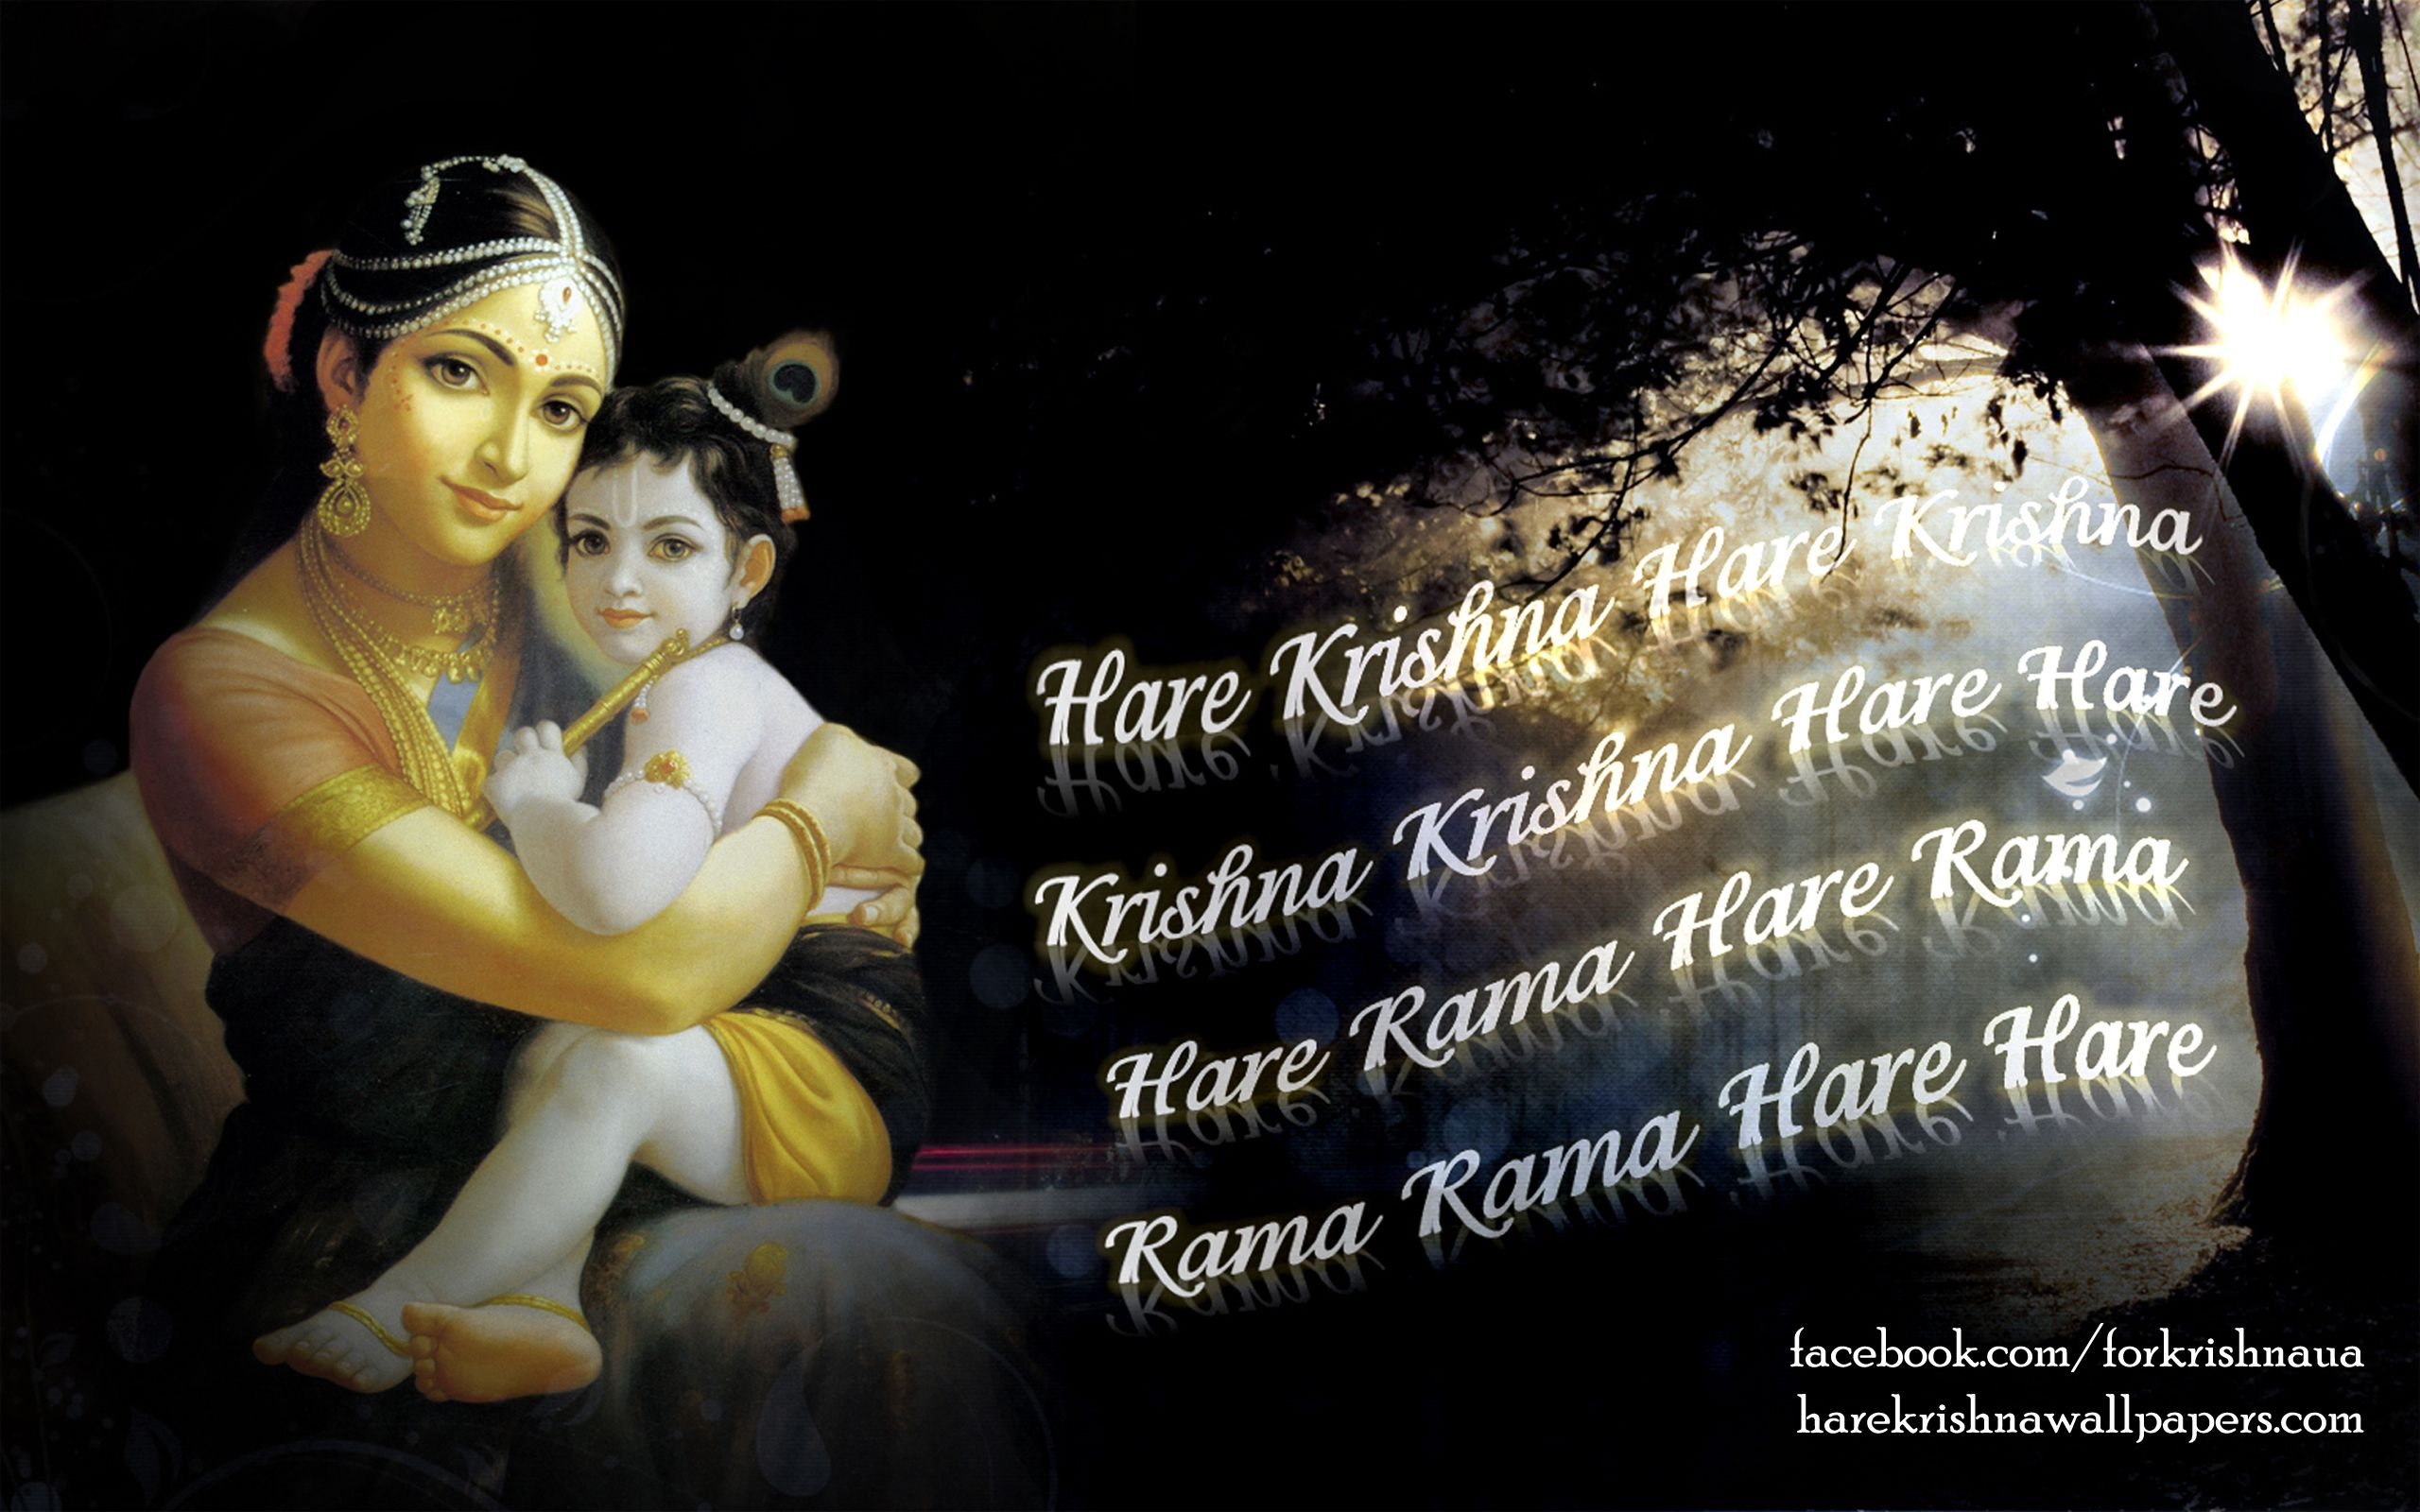 Pin By Hare Krishna Wallpapers On Art Work Holy Name Name Wallpaper Krishna Love Hare Krishna